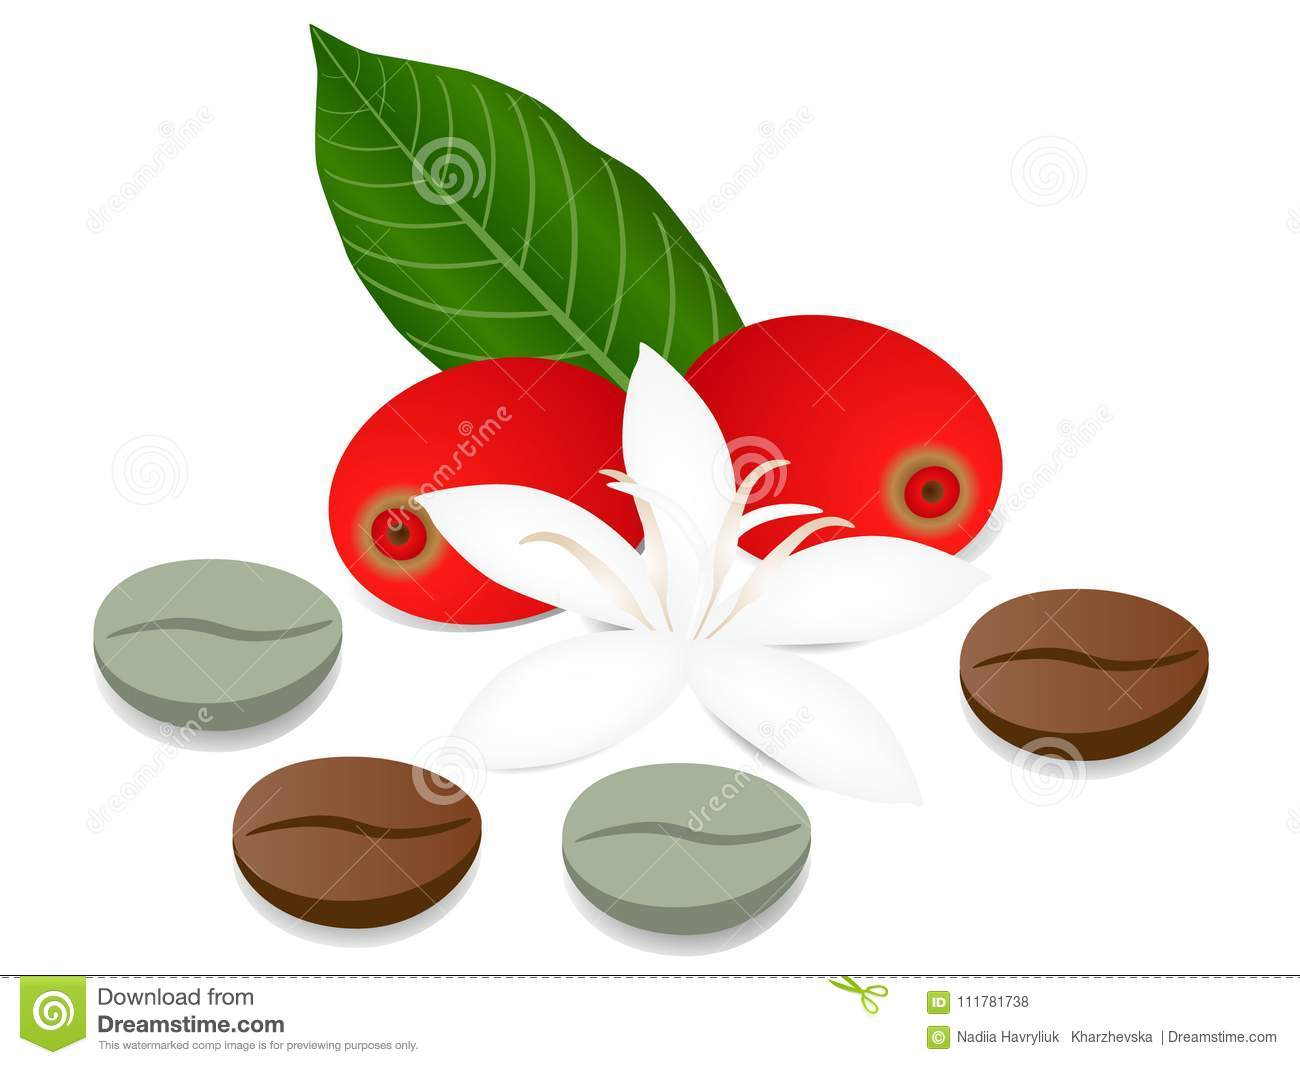 Whole coffee berries, beans and a flower with a leaf isolated on a white background.